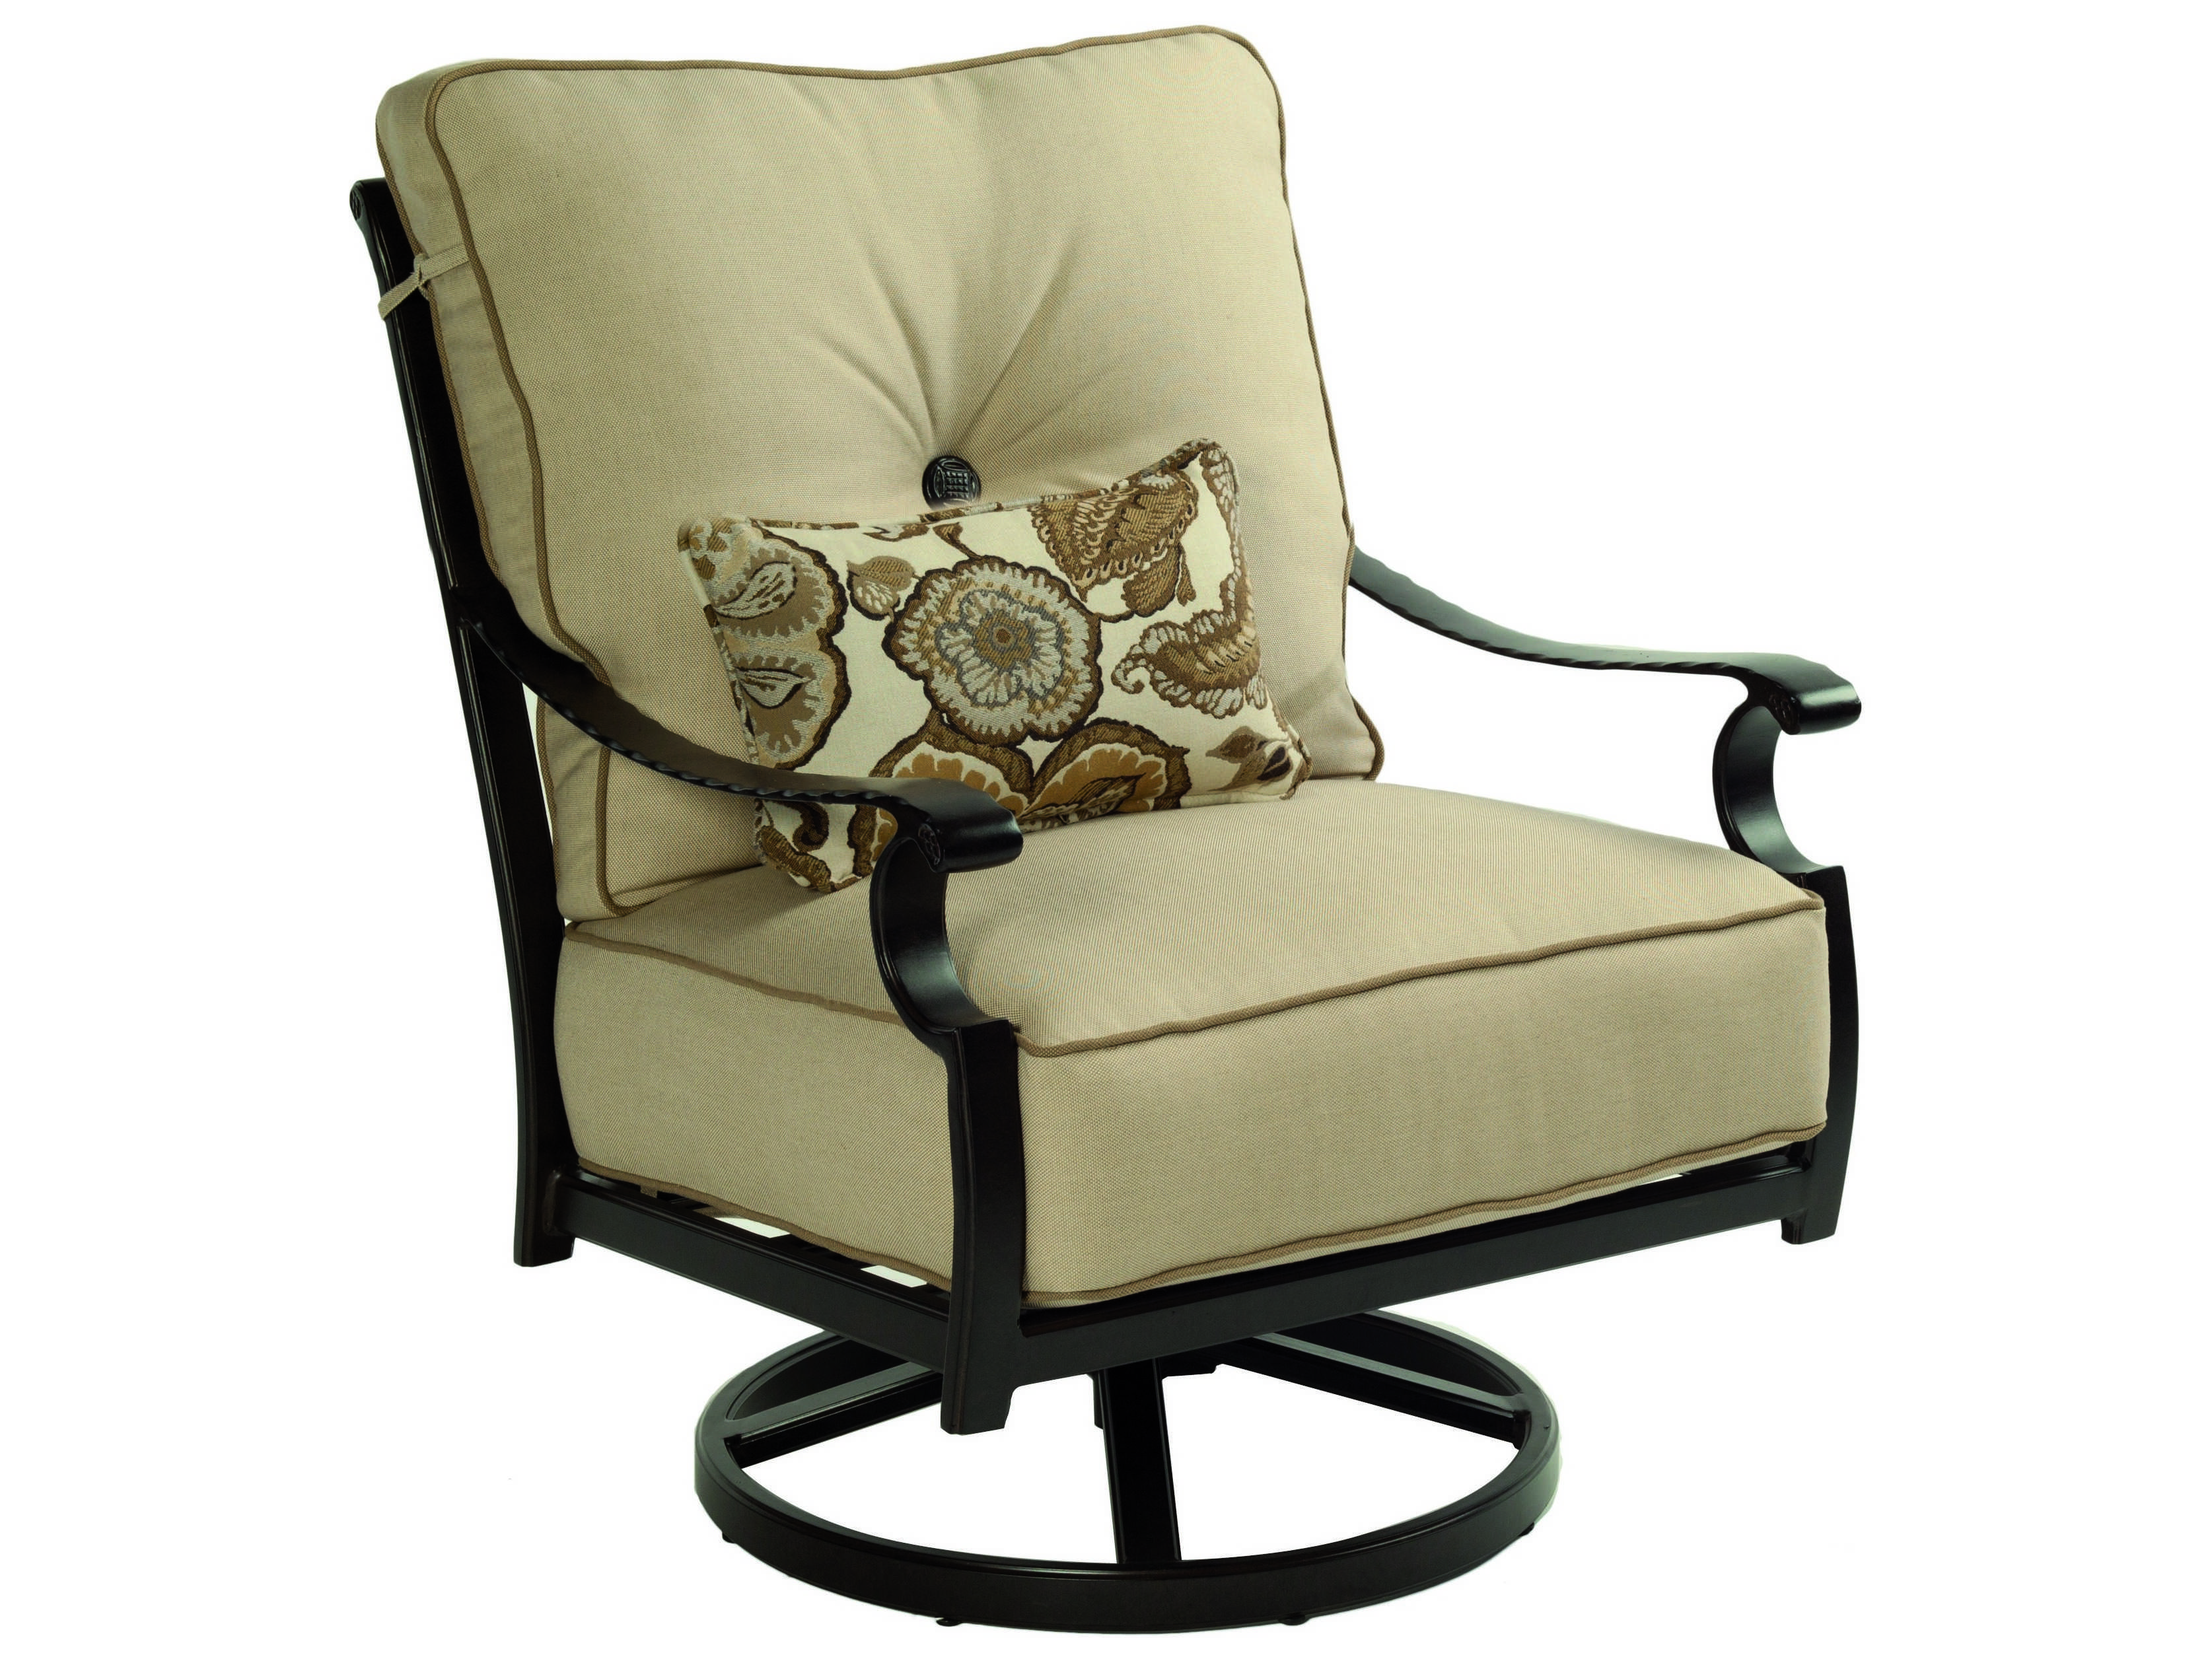 Deep Seating Patio Chairs Castelle Monterey Deep Seating Cast Aluminum High Back